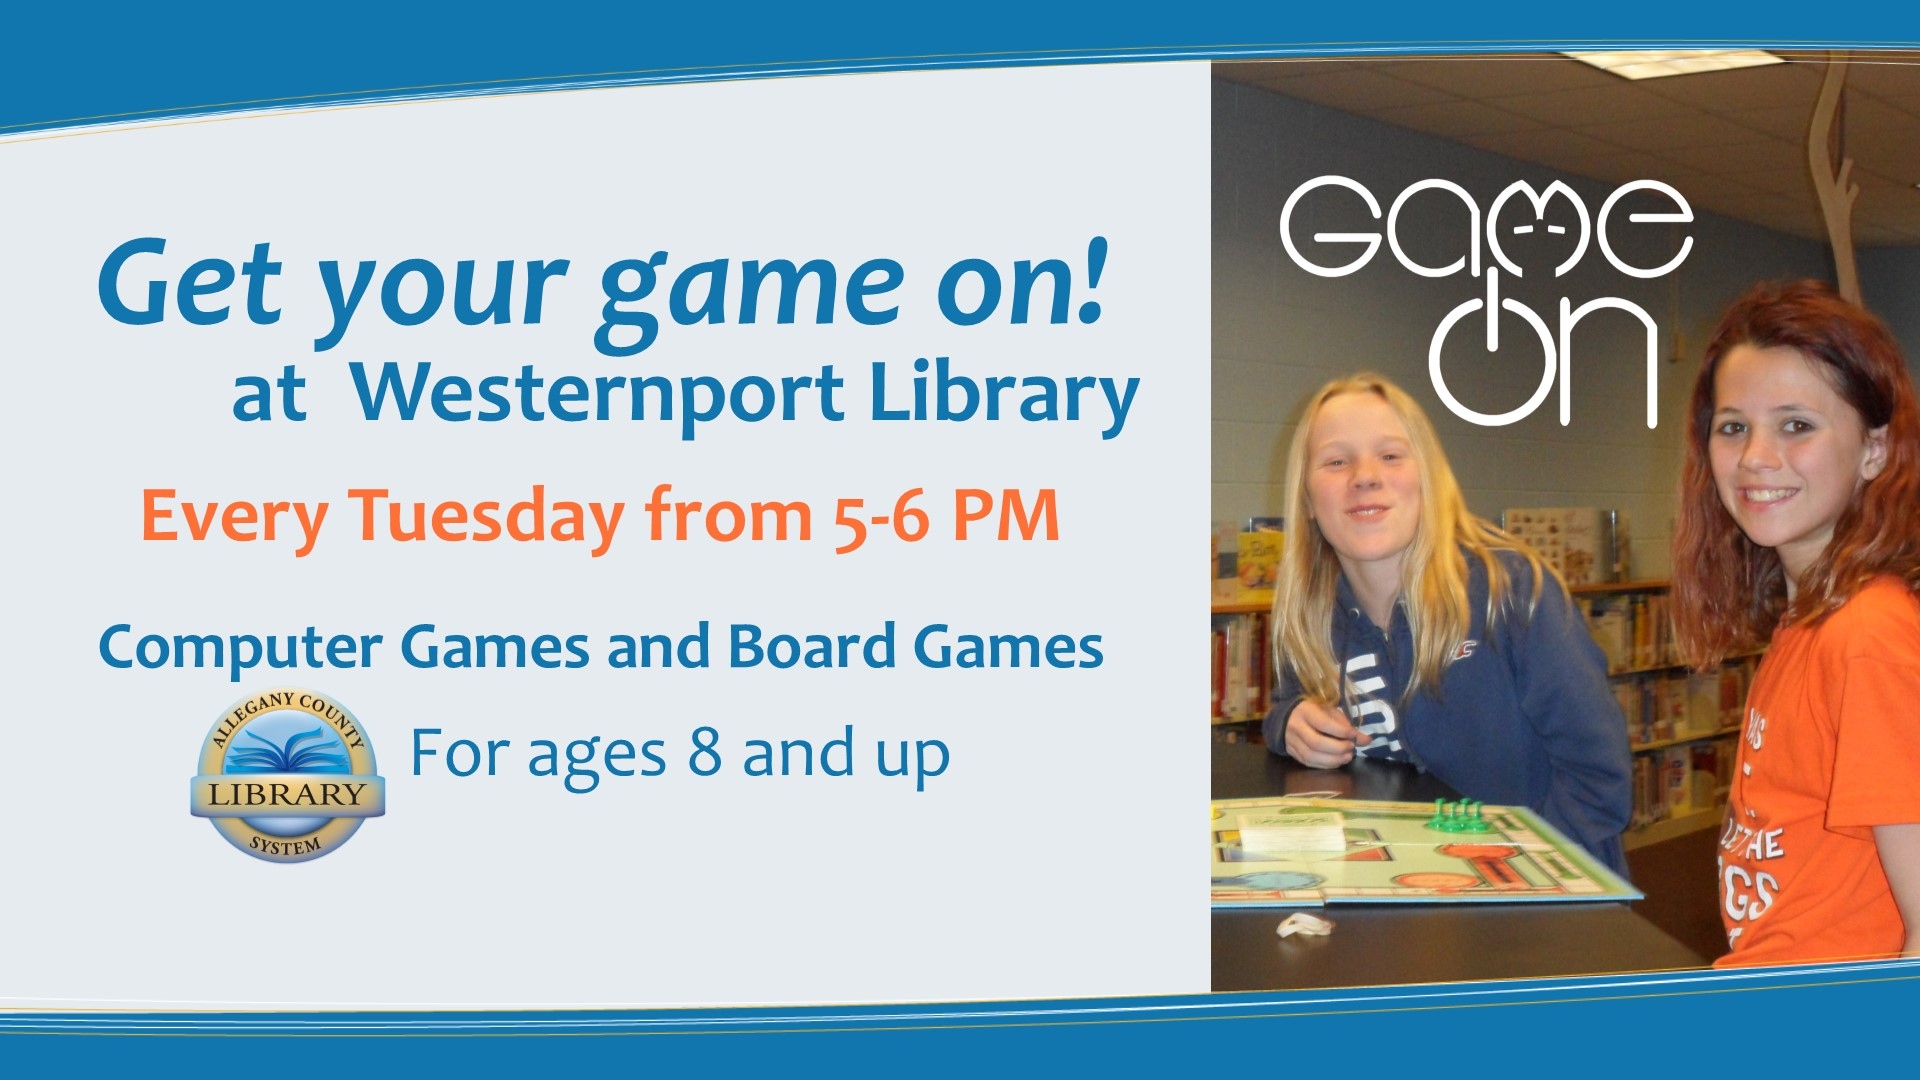 Get your game on at the Westernport Library